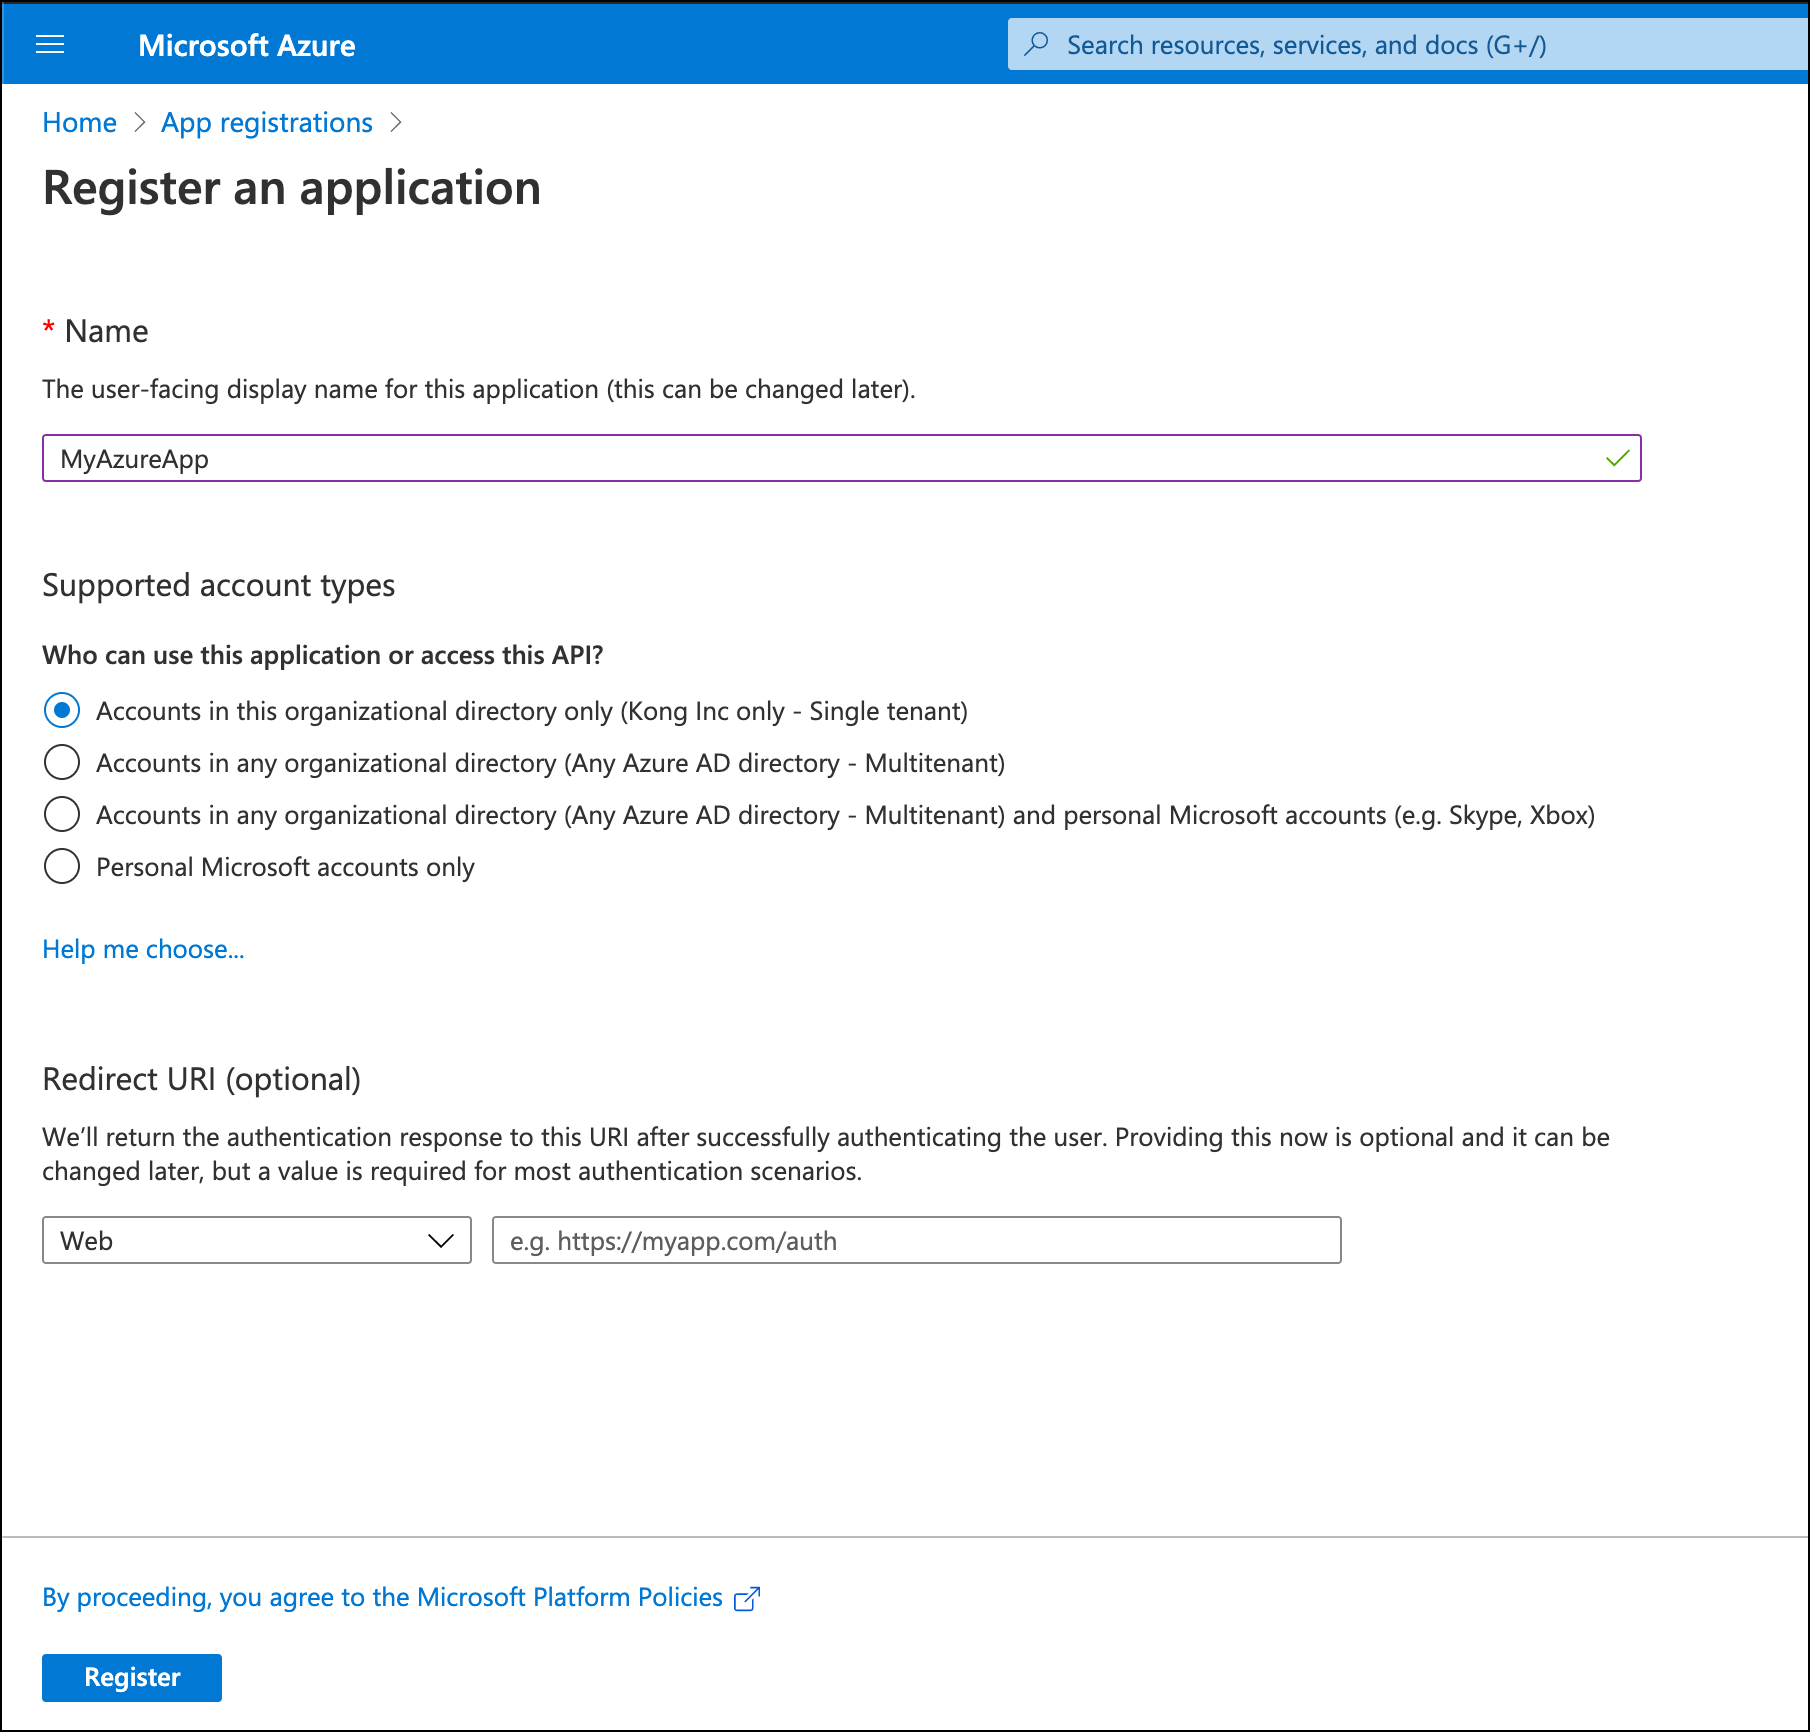 Azure App Registrations